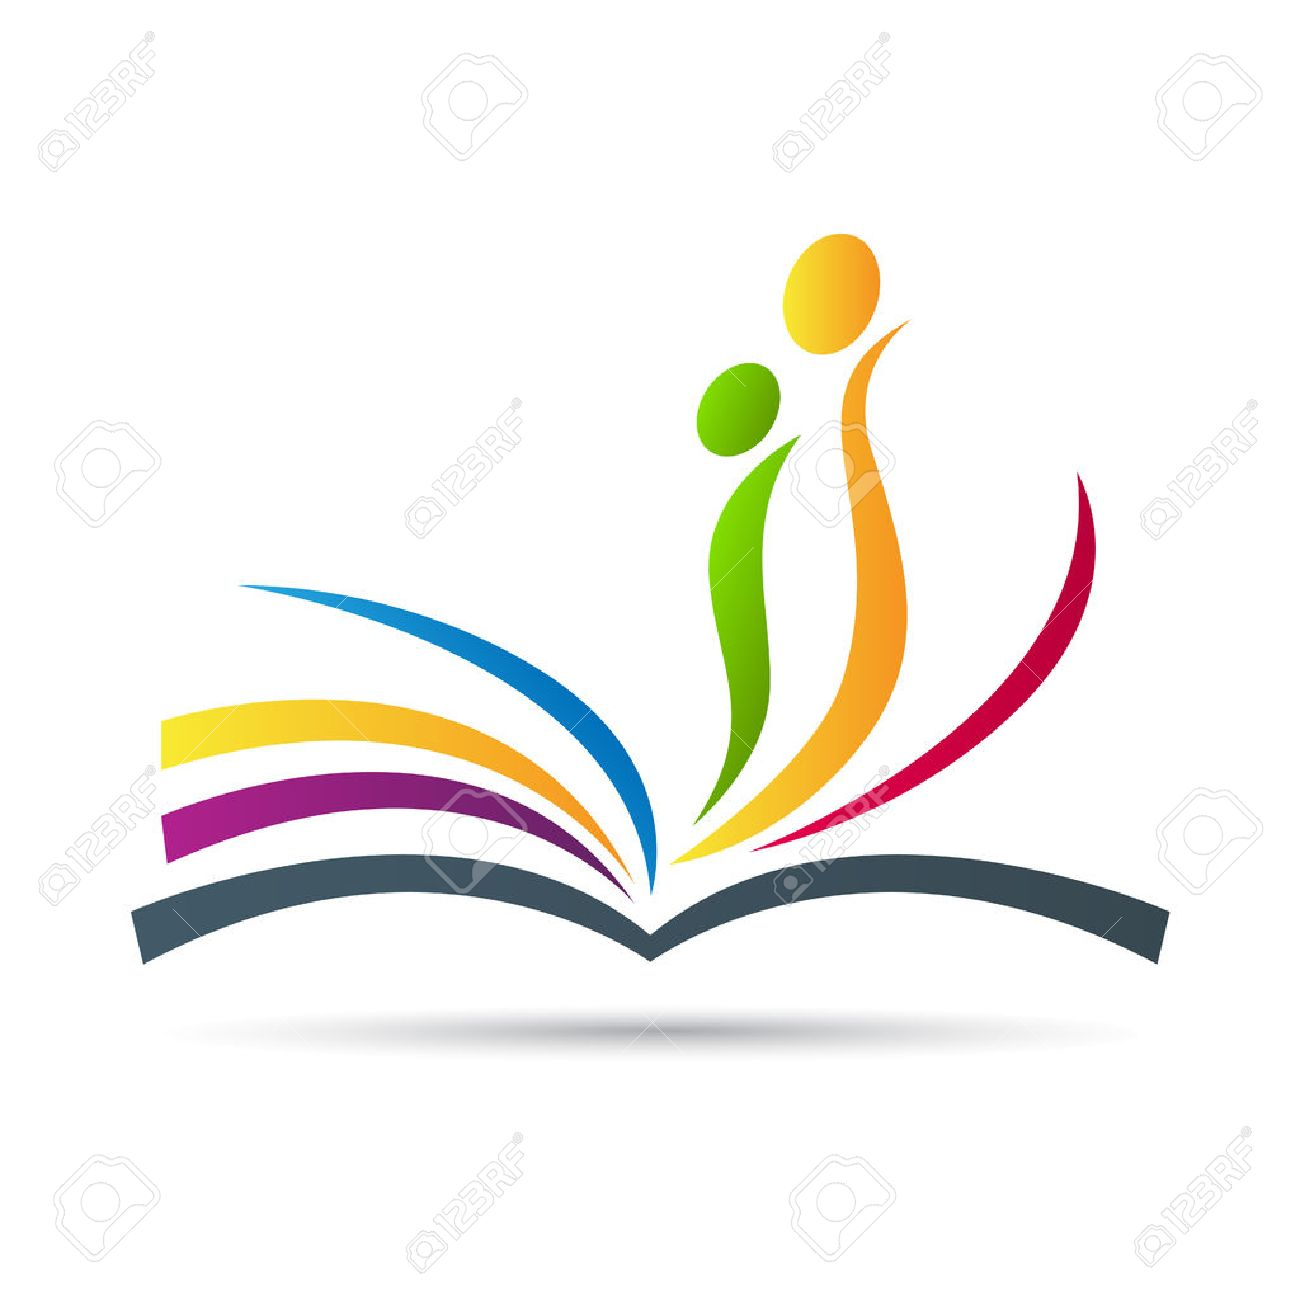 Abstract Book Vector Design Represents Sign And Symbol Of Education